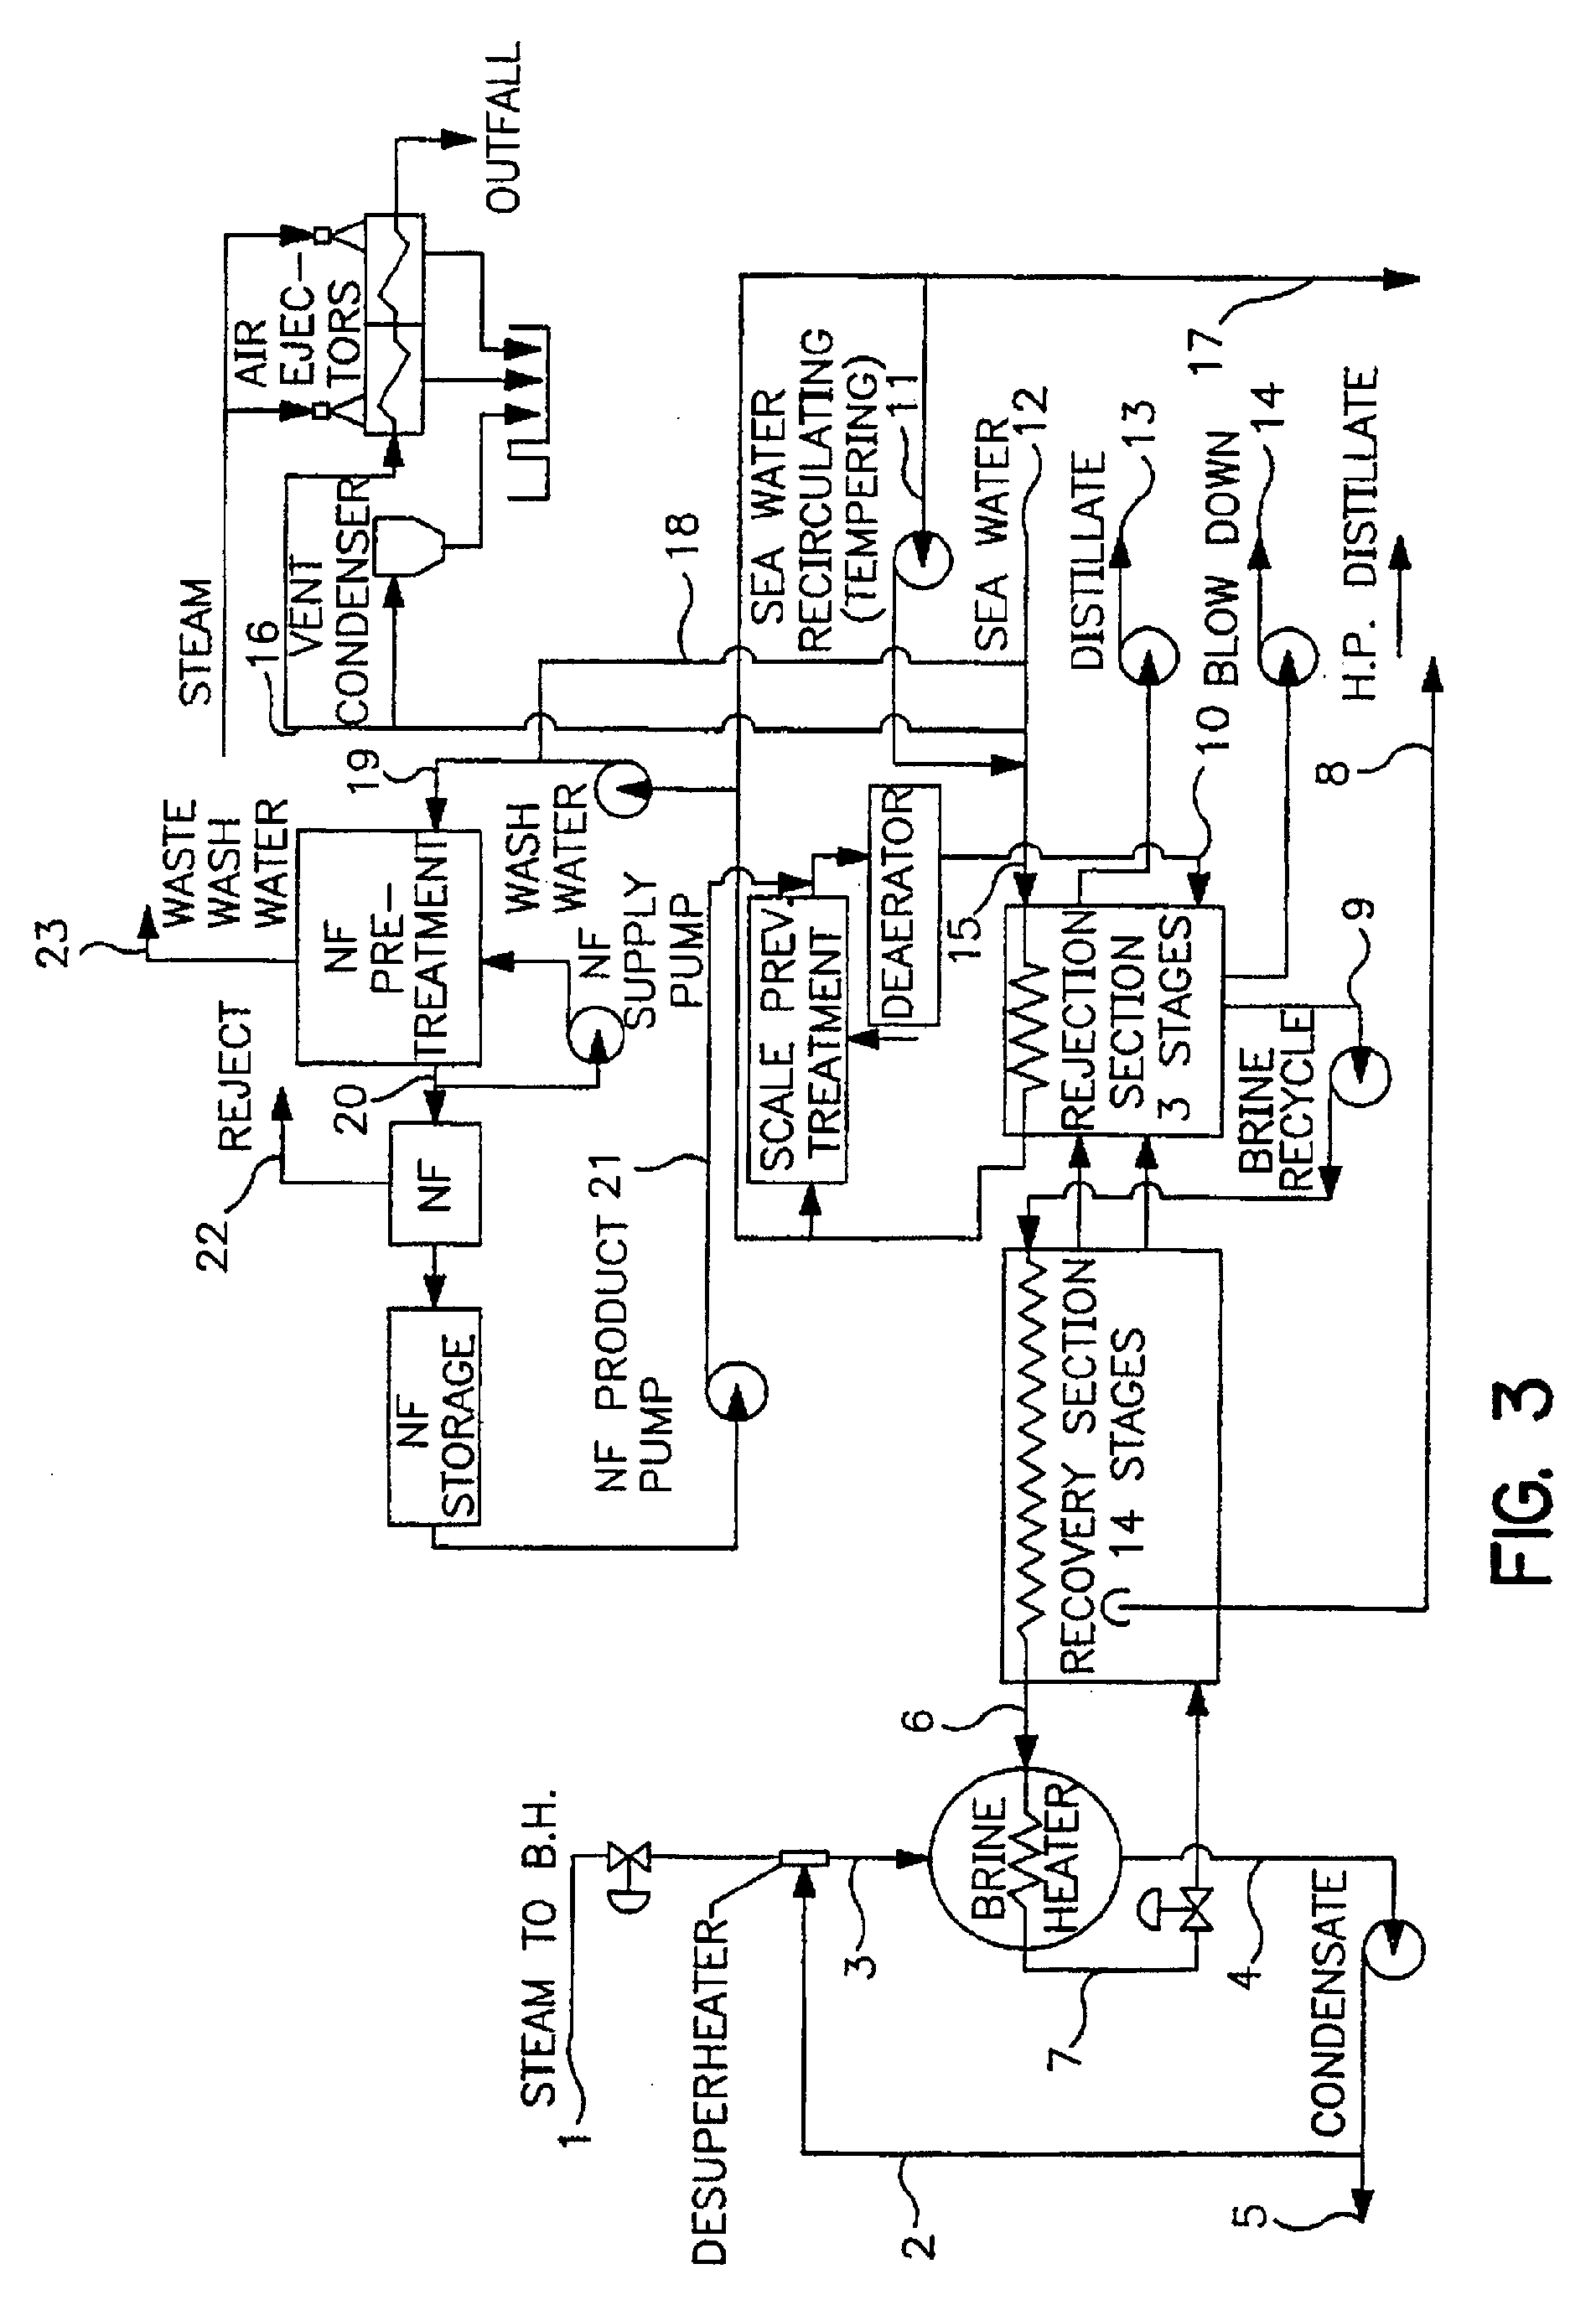 Patent EP A2 A salt water desalination process using ion